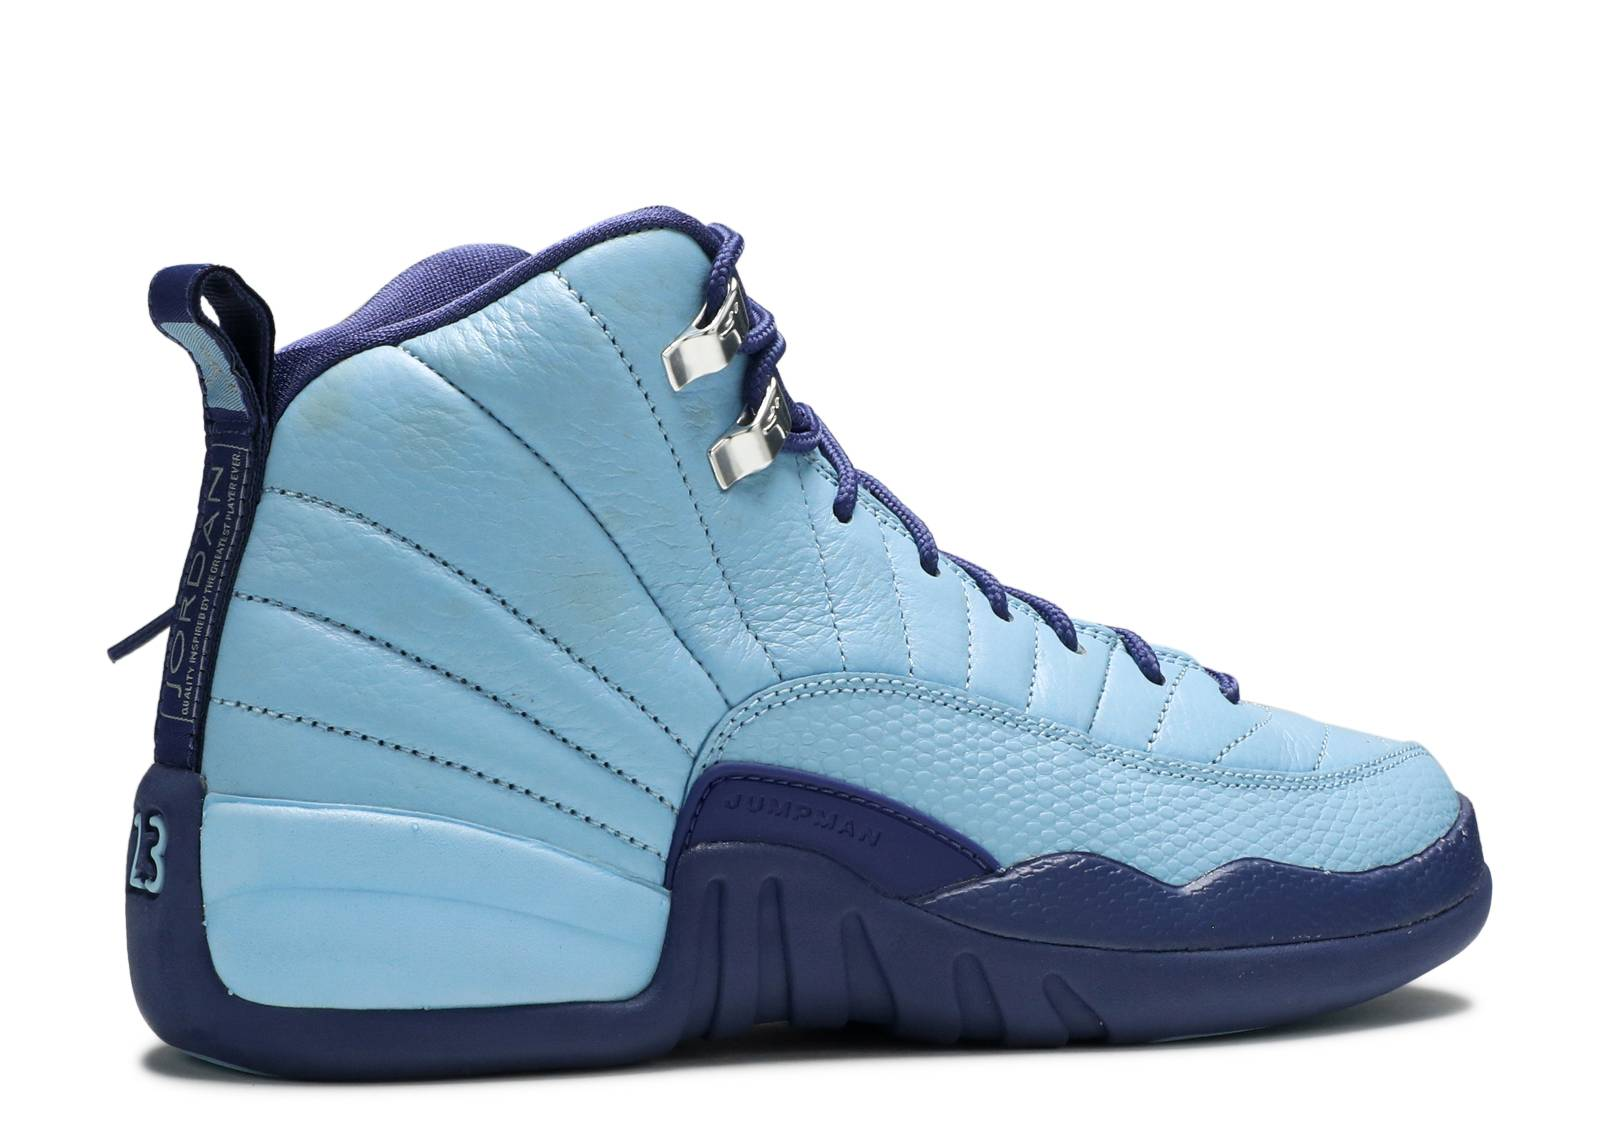 c6295a0051ff79 ... 510815-418 Blue Cap Profile Air Jordan 12 Retro GS ... air jordan 12  retro gg (gs) ...